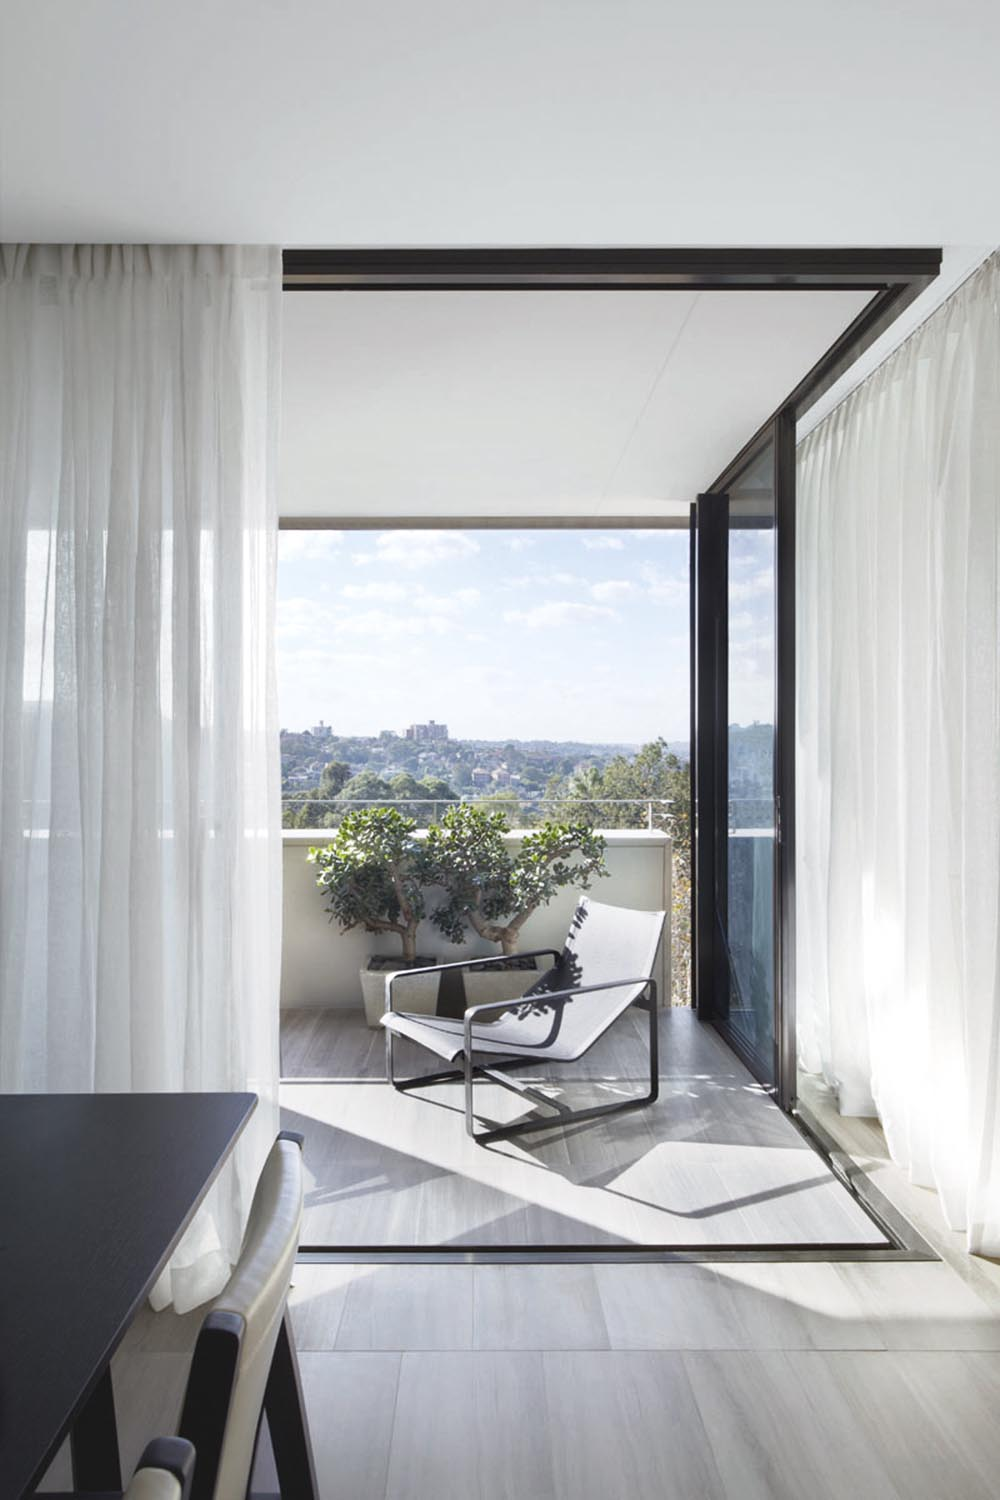 Apartment-dwellers can still enjoy the outdoors with a sun-bathed balcony